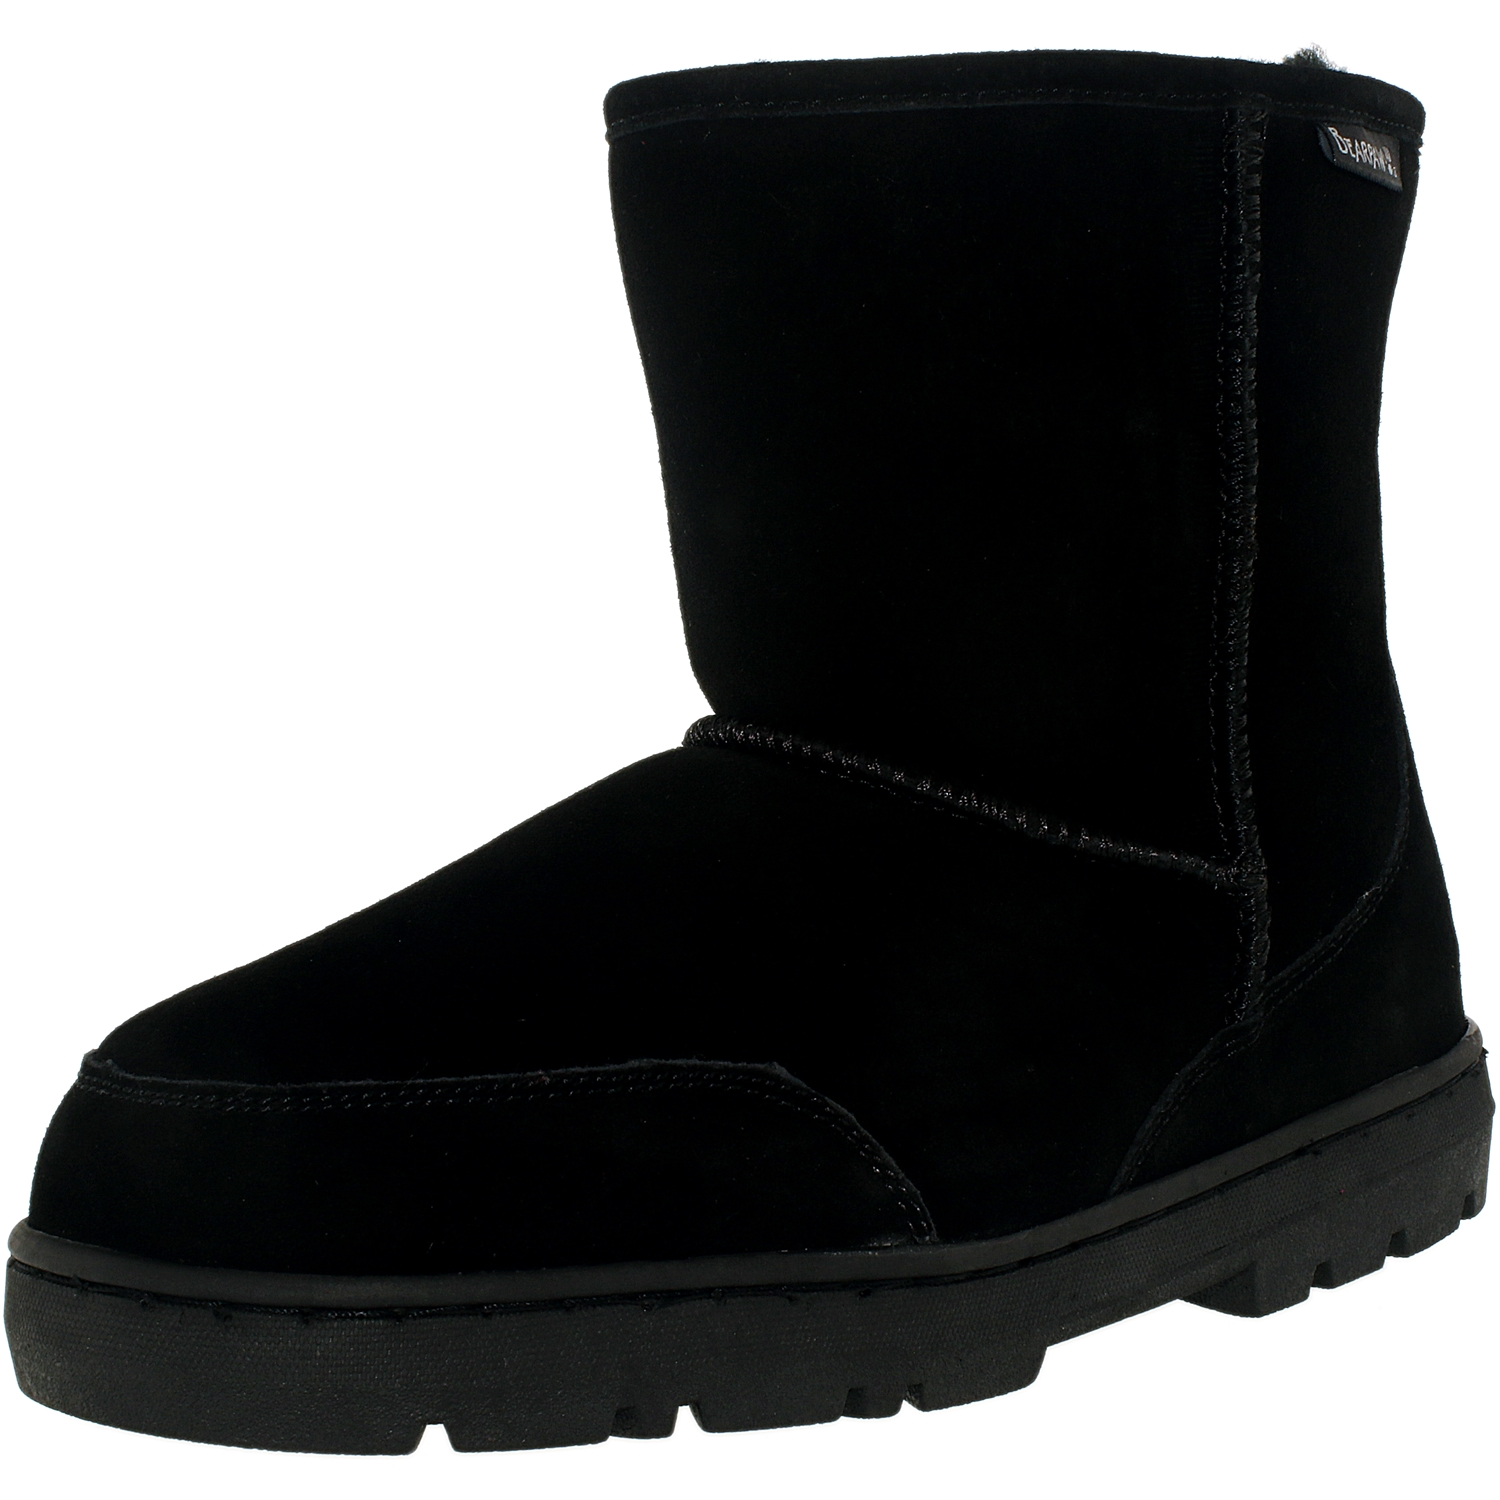 04607b37e1b3 Bearpaw Men s Patriot Black Ii High-Top Suede Boot - 11M